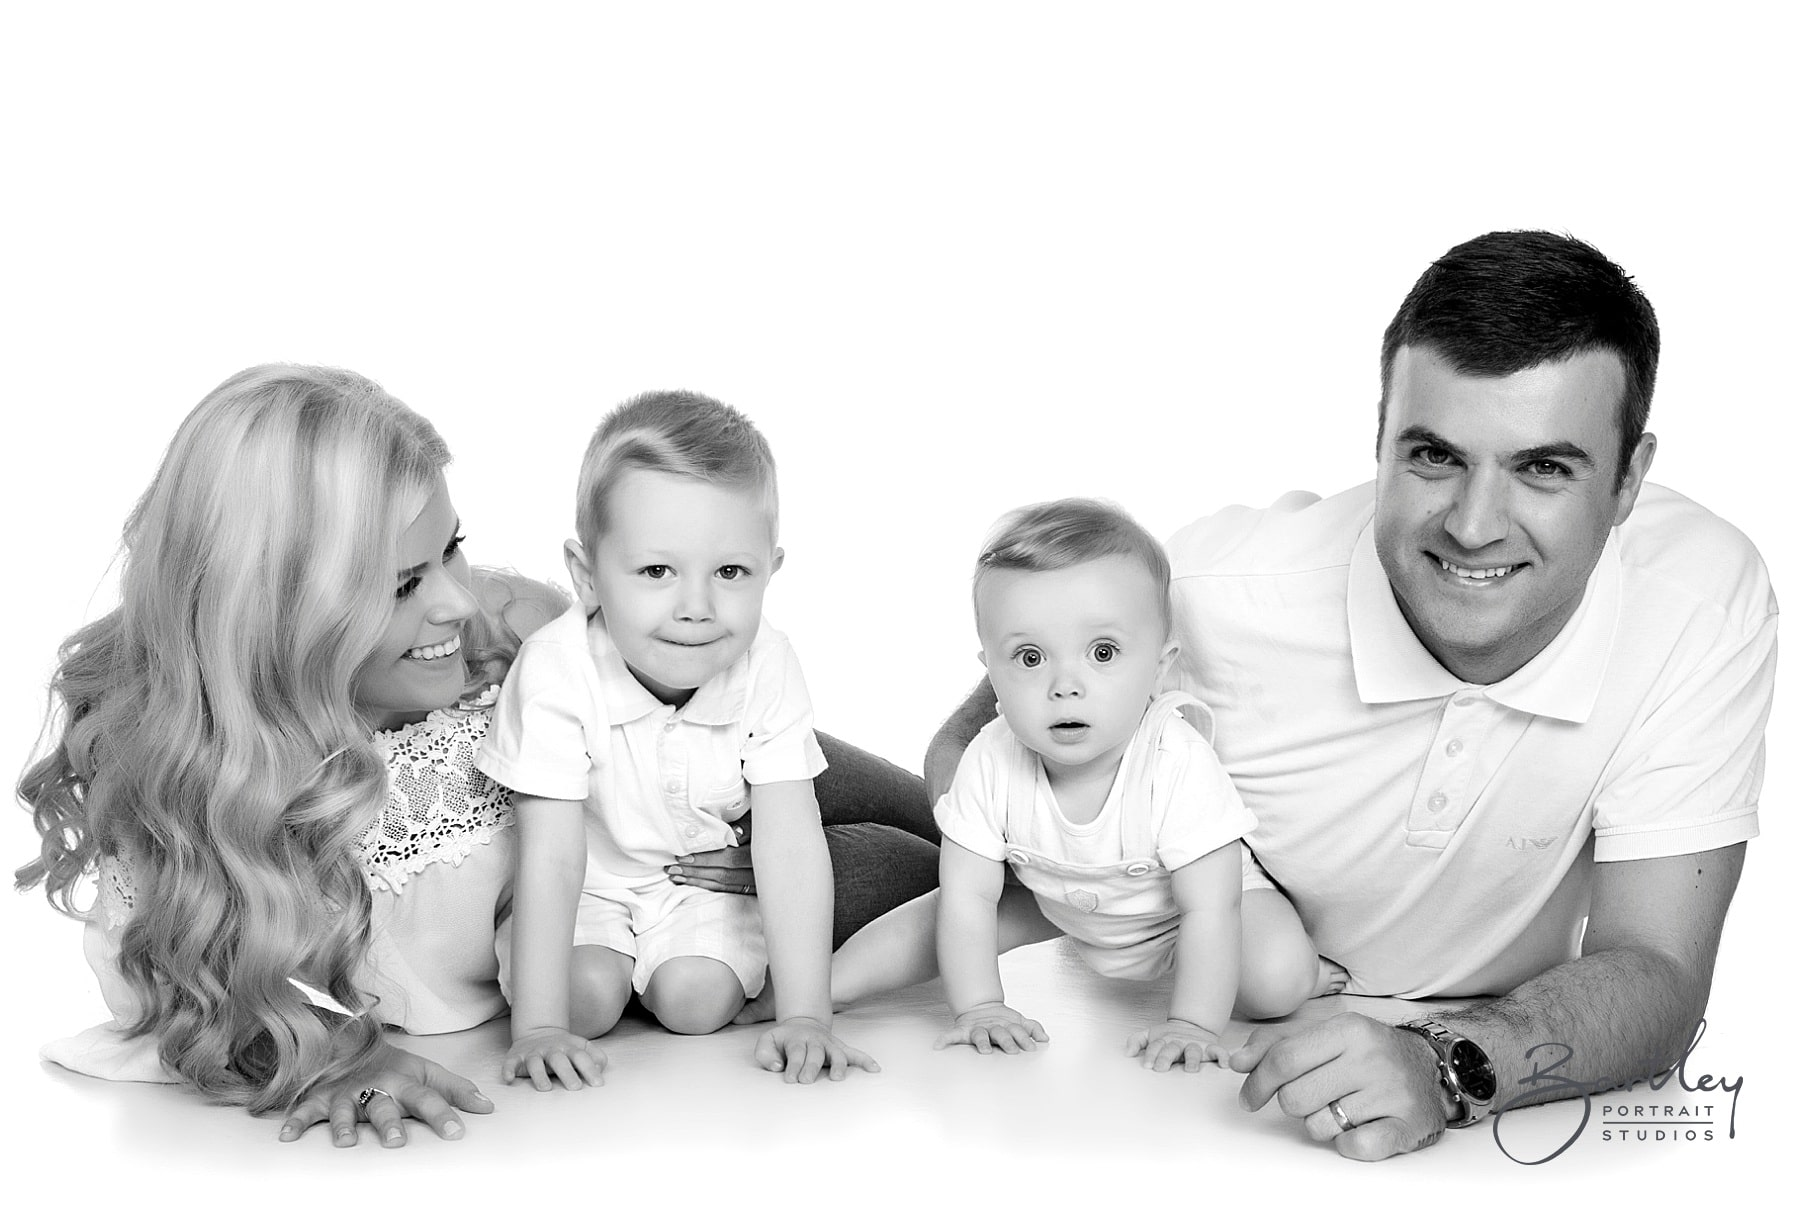 white tops family photograph takin in studio